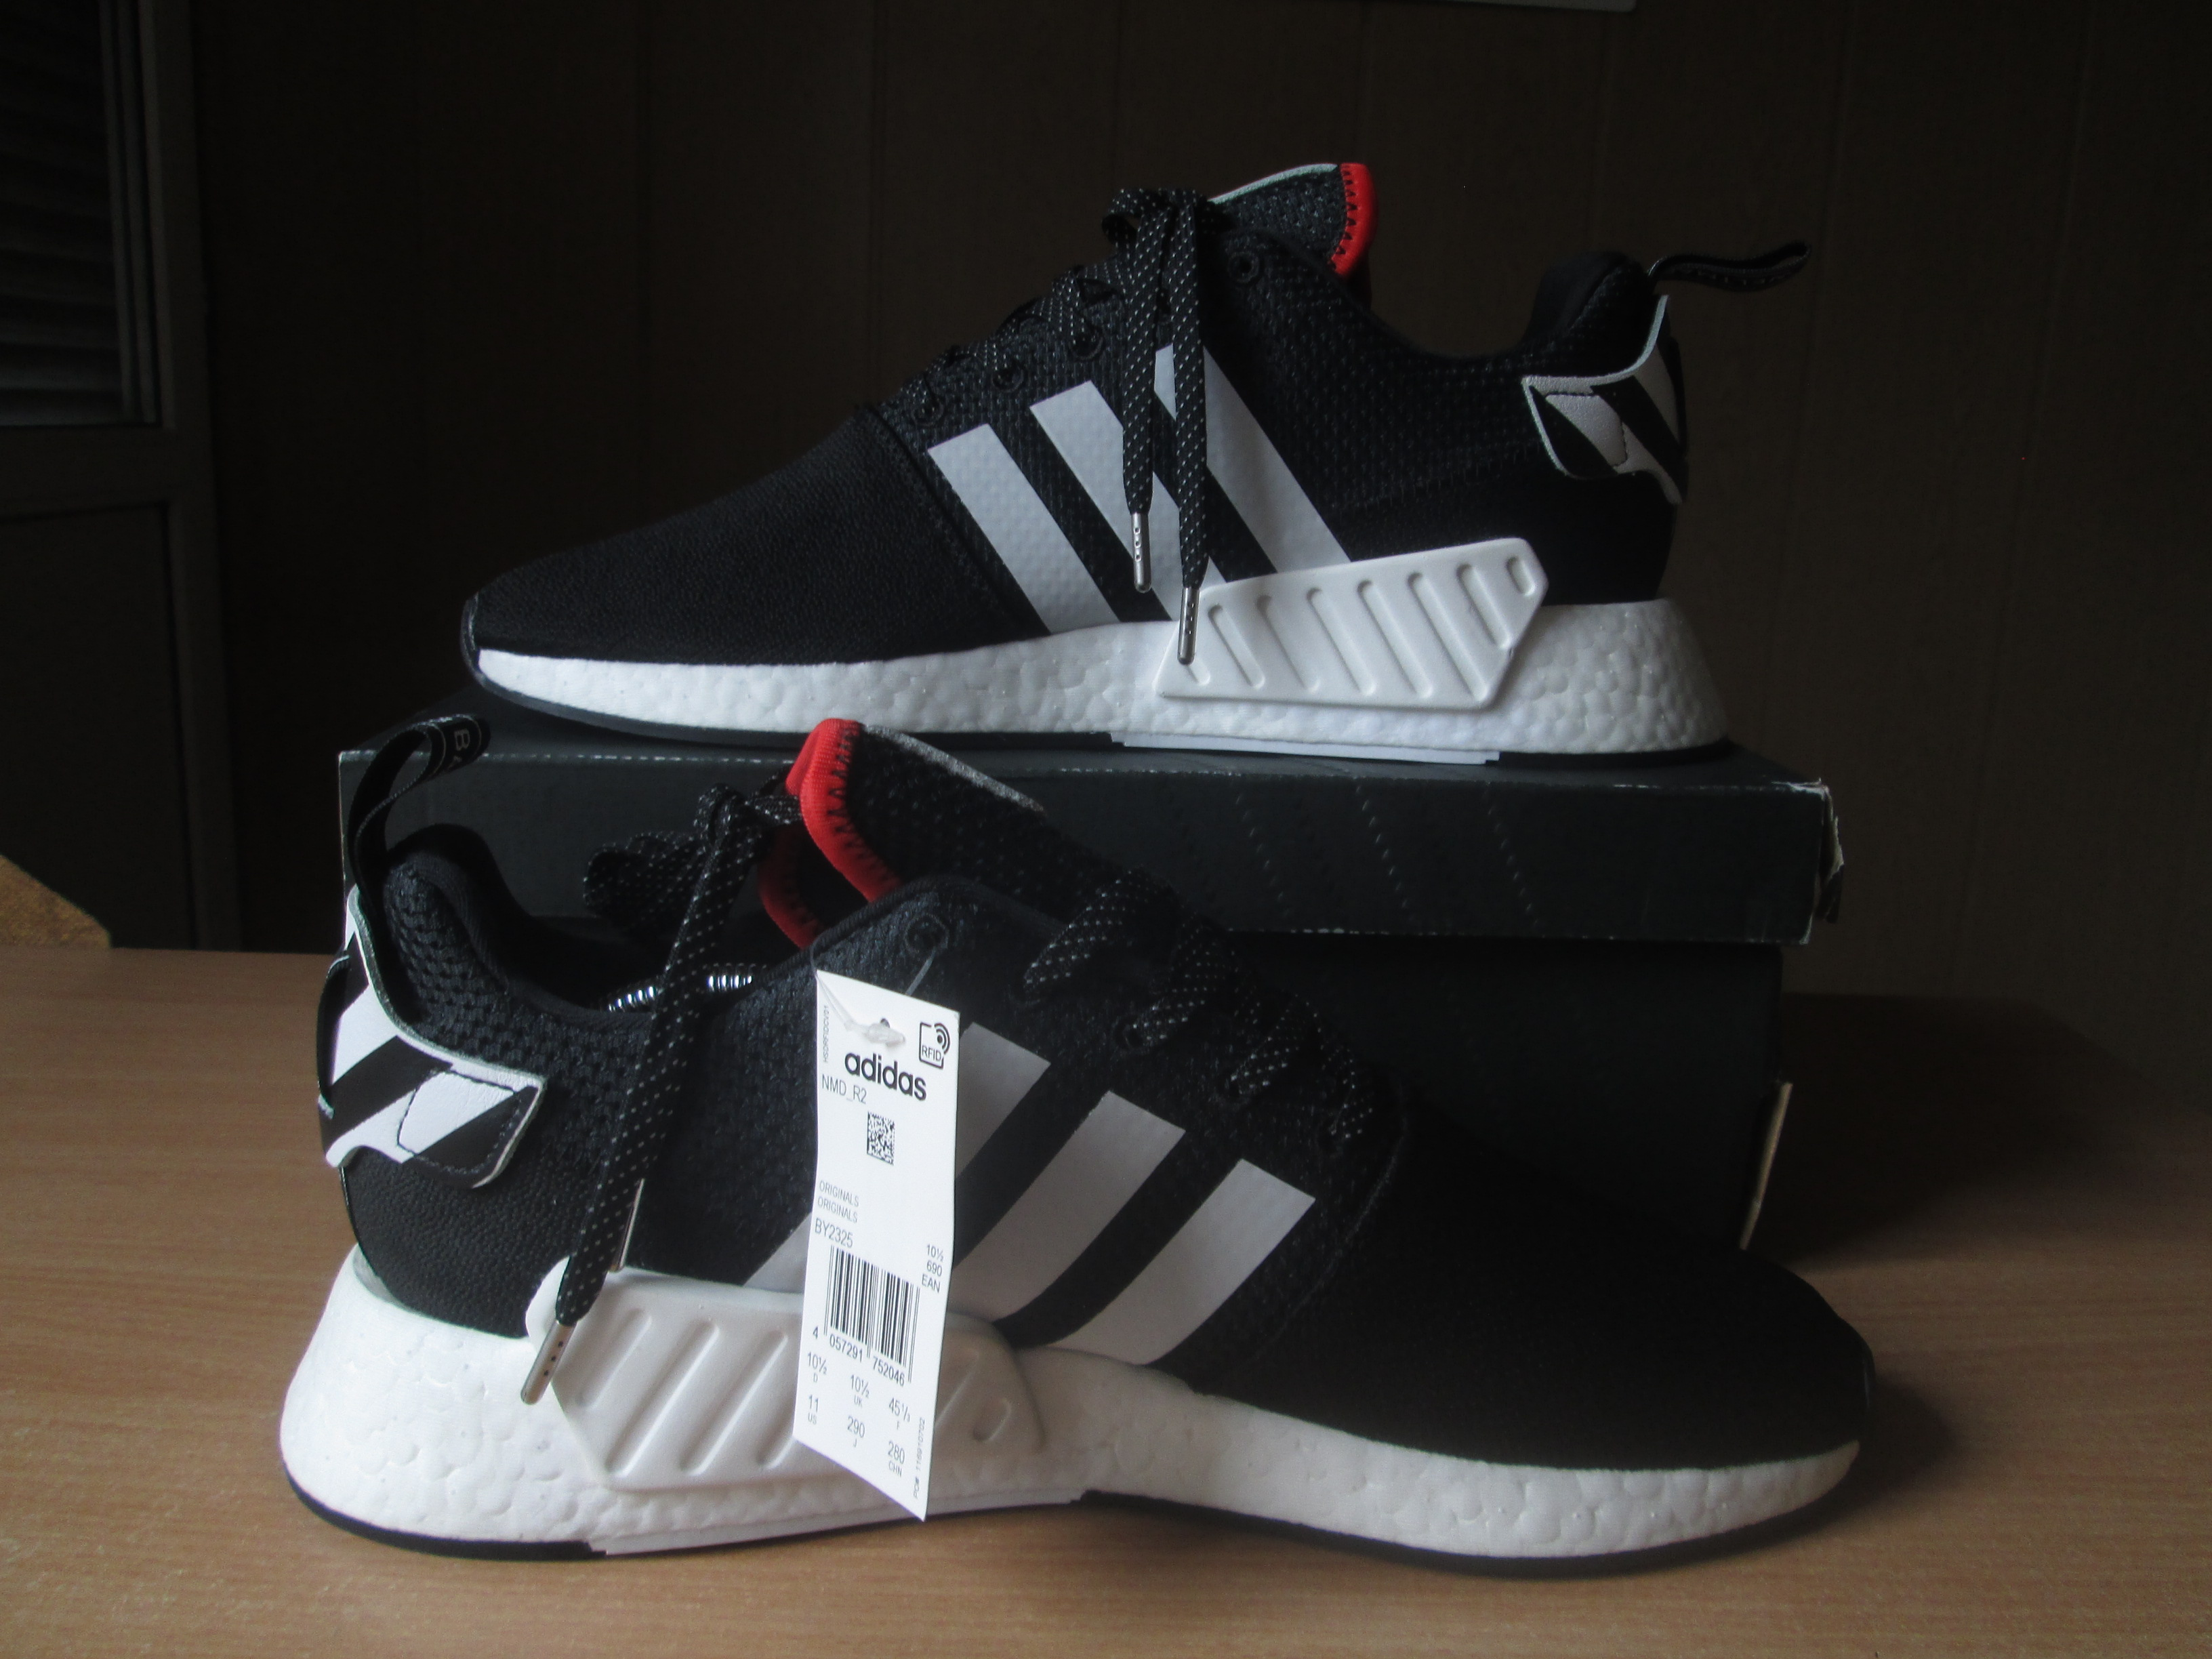 separation shoes 6c649 f2e23 Adidas Adidas Nmd R2 Tokyo/off White - 11/11,5 Us   Grailed